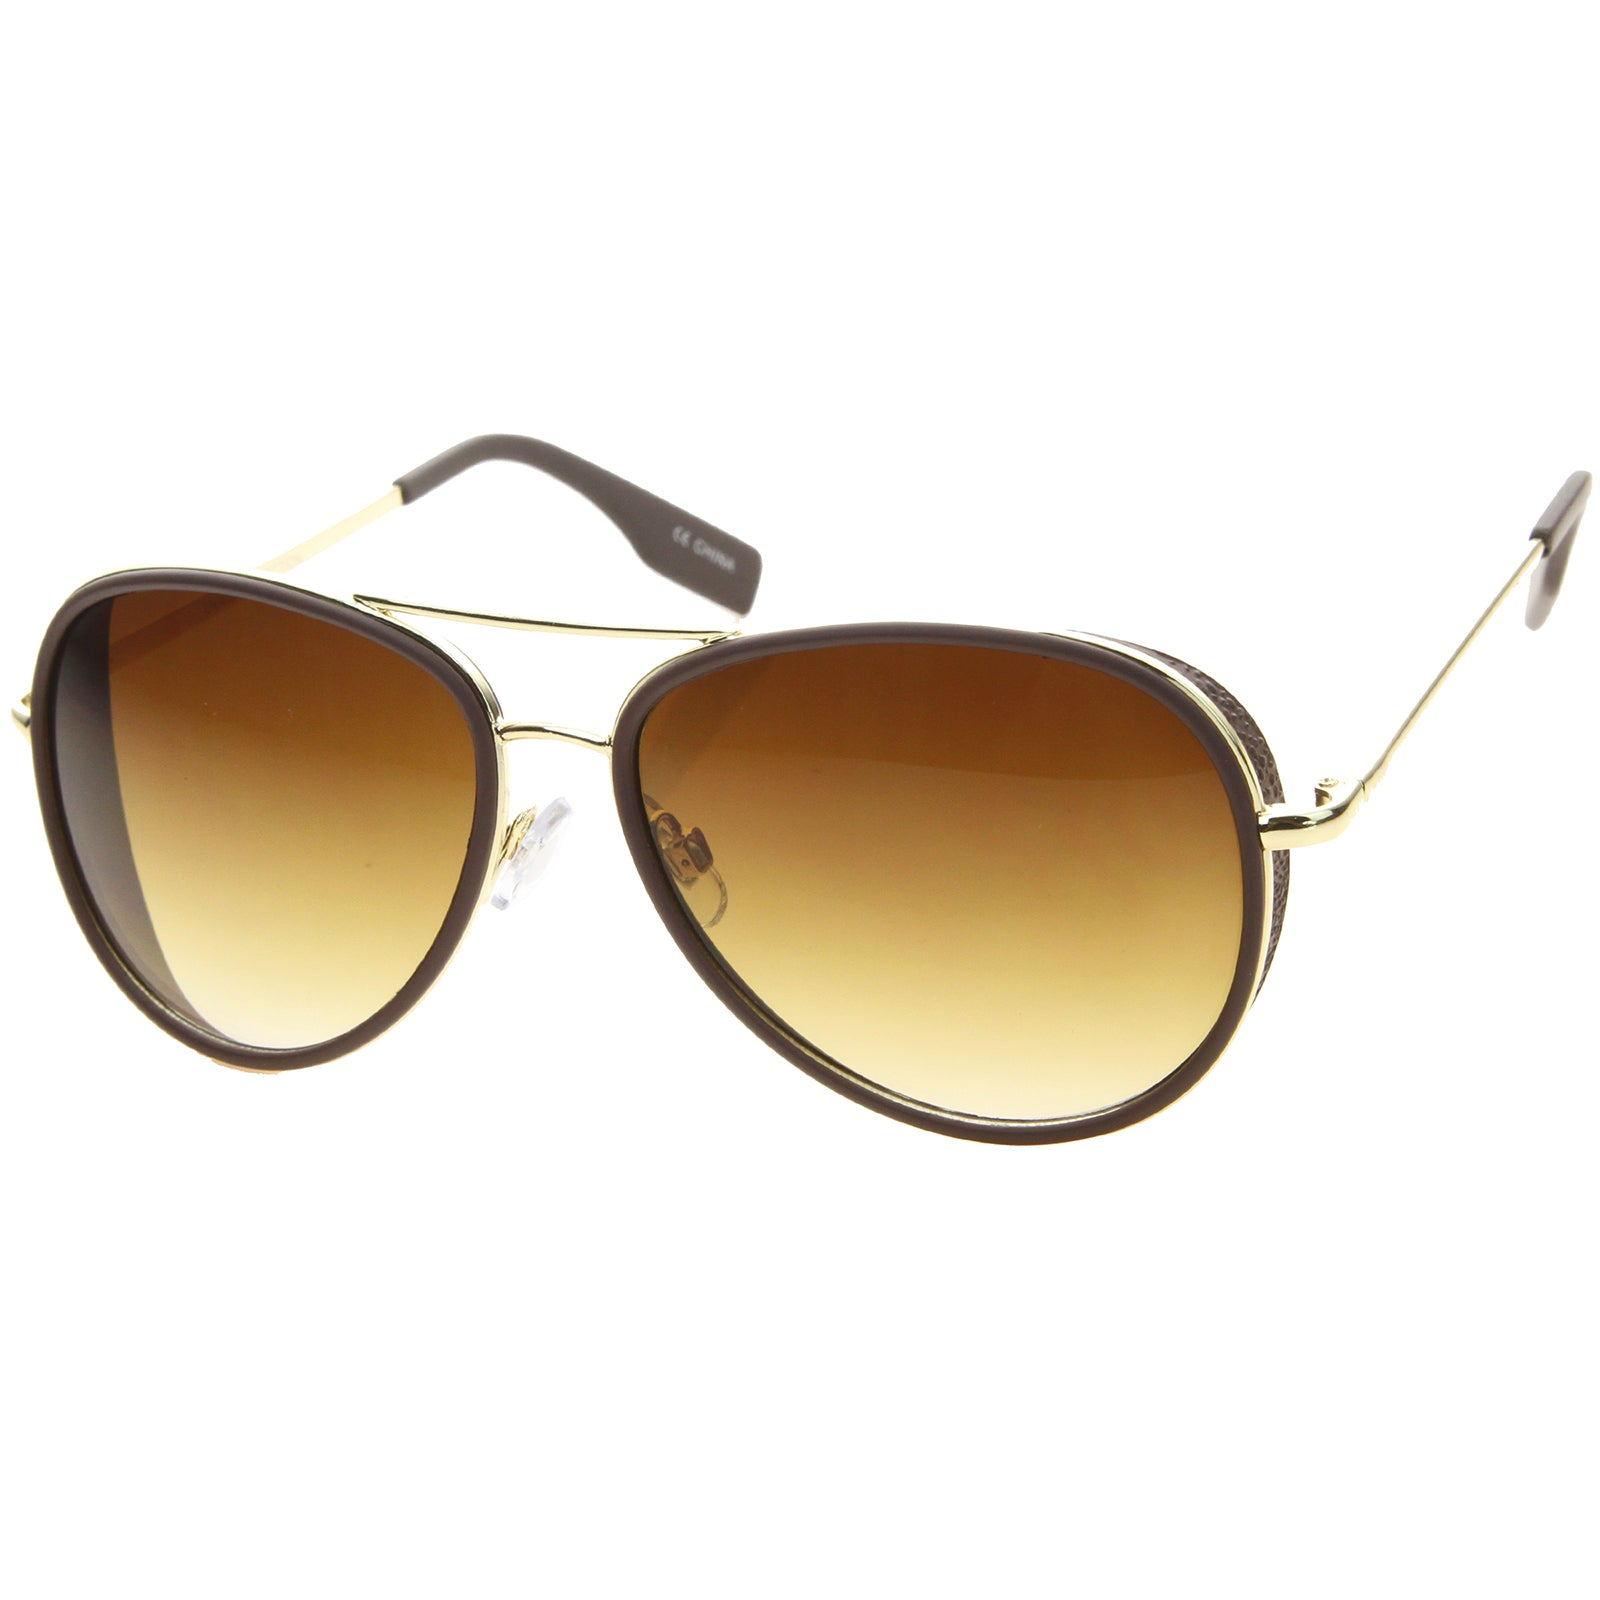 Womens Aviator Sunglasses With UV400 Protected Gradient Lens - sunglass.la - 2